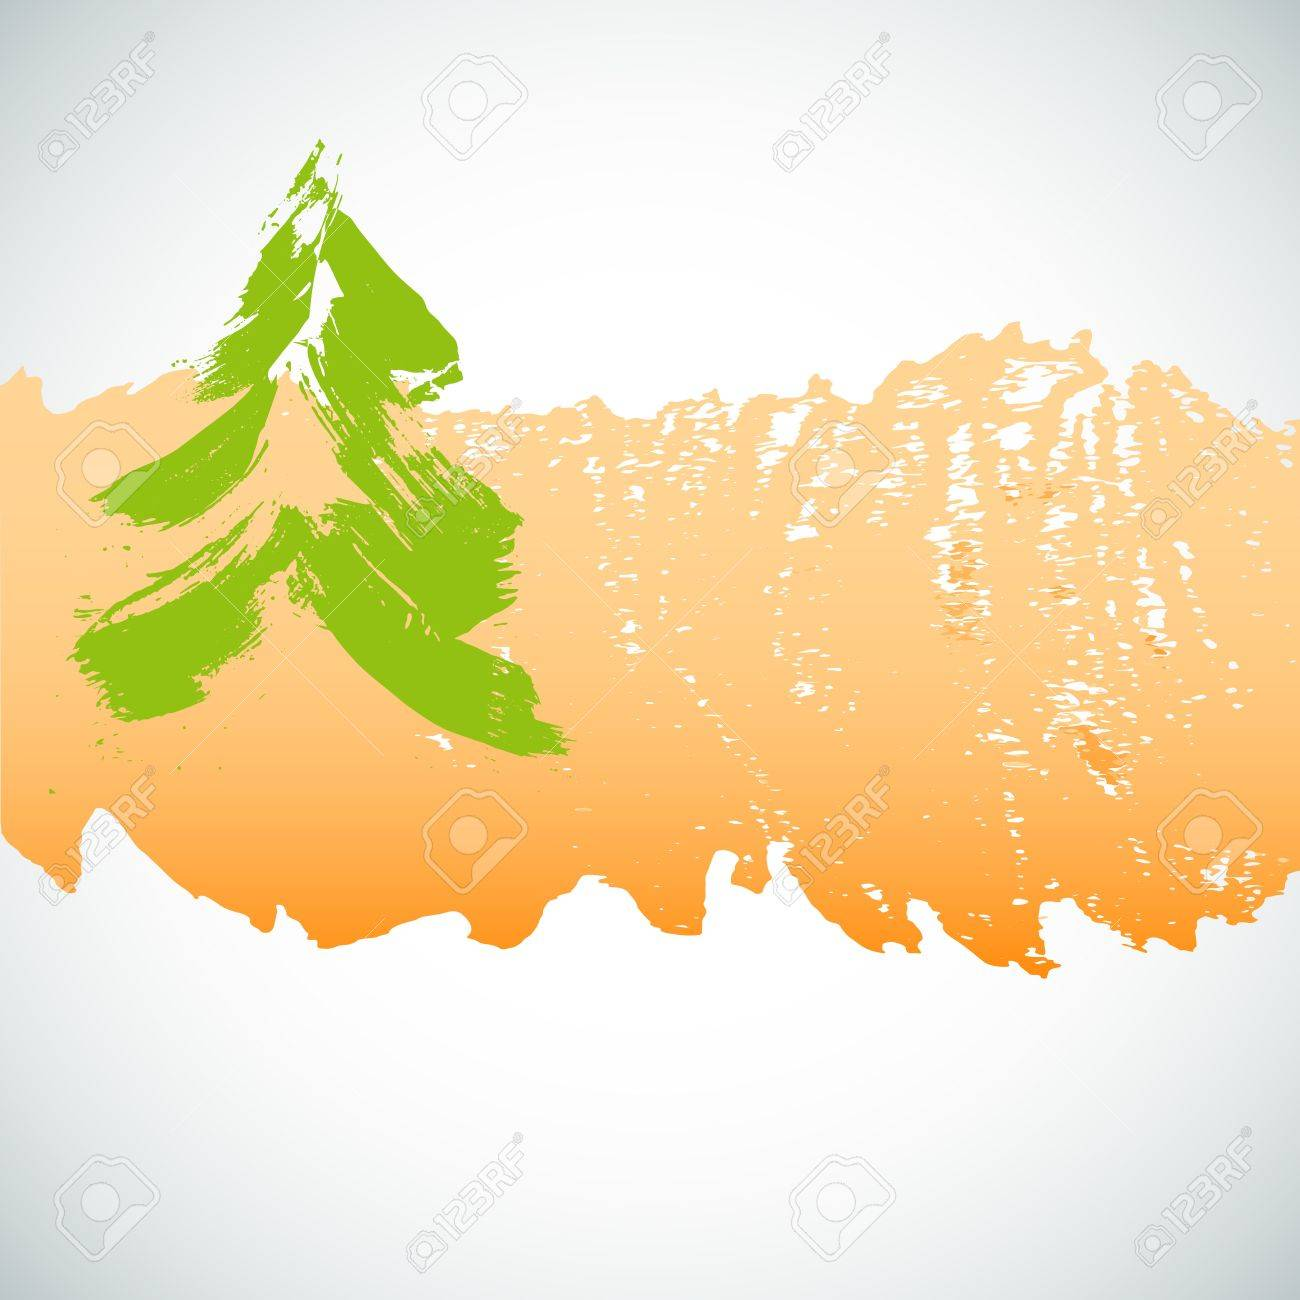 Painted christmas tree over grunge background  illustration Stock Vector - 16293278